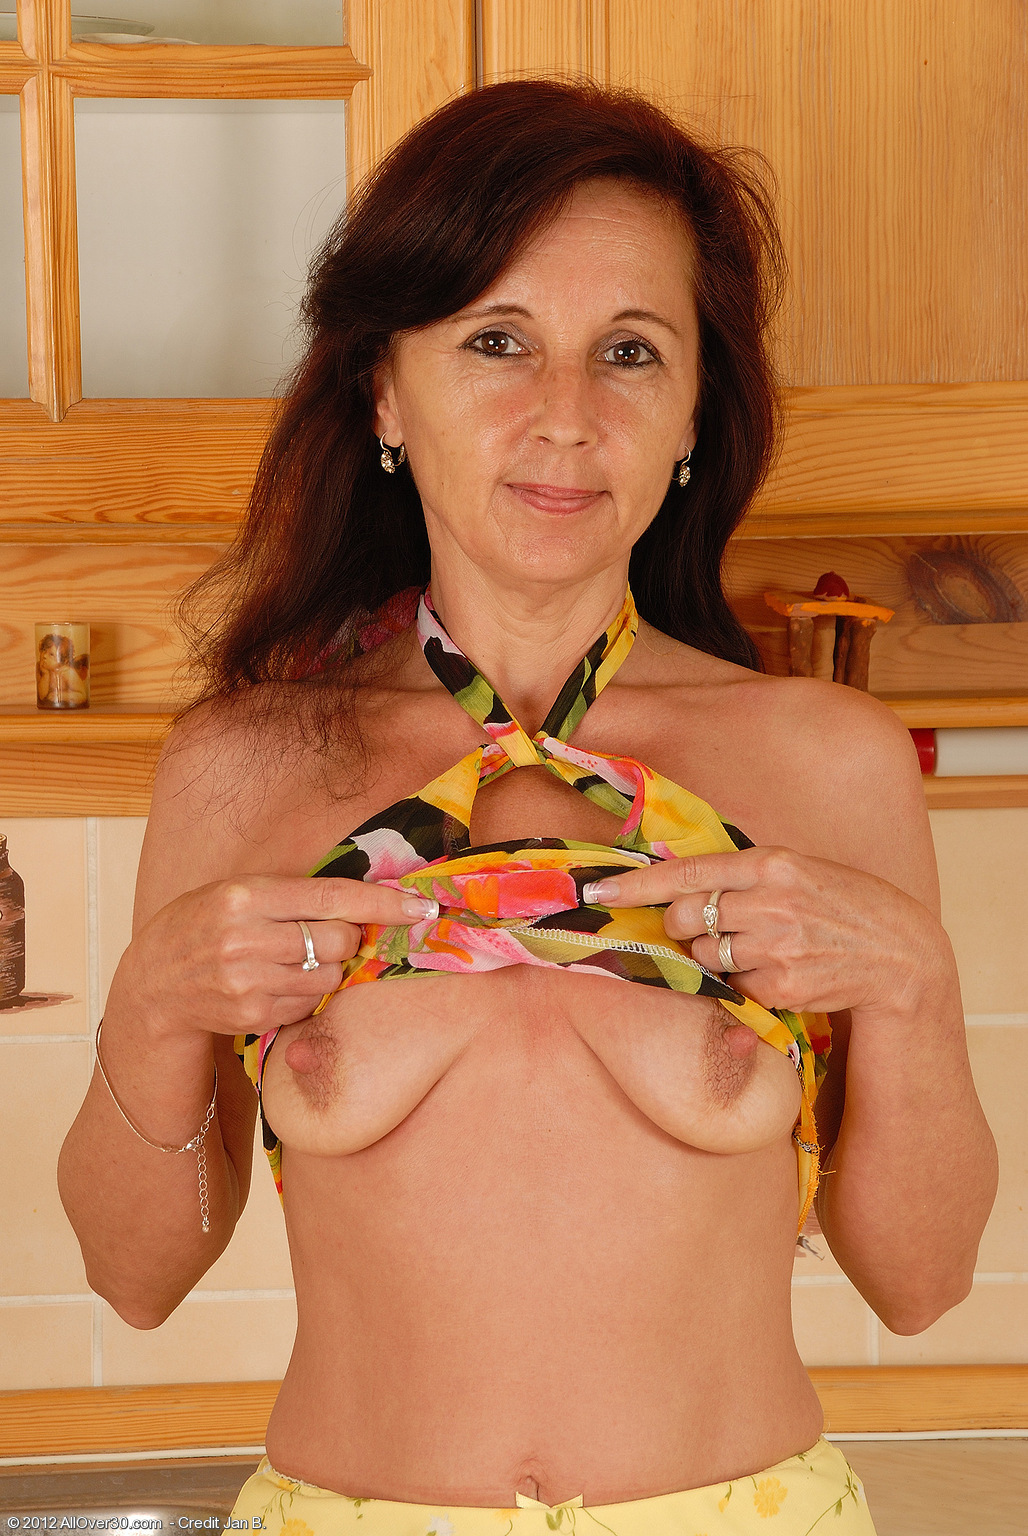 Jenny H Kitchen Housewife at AllOver30 Free